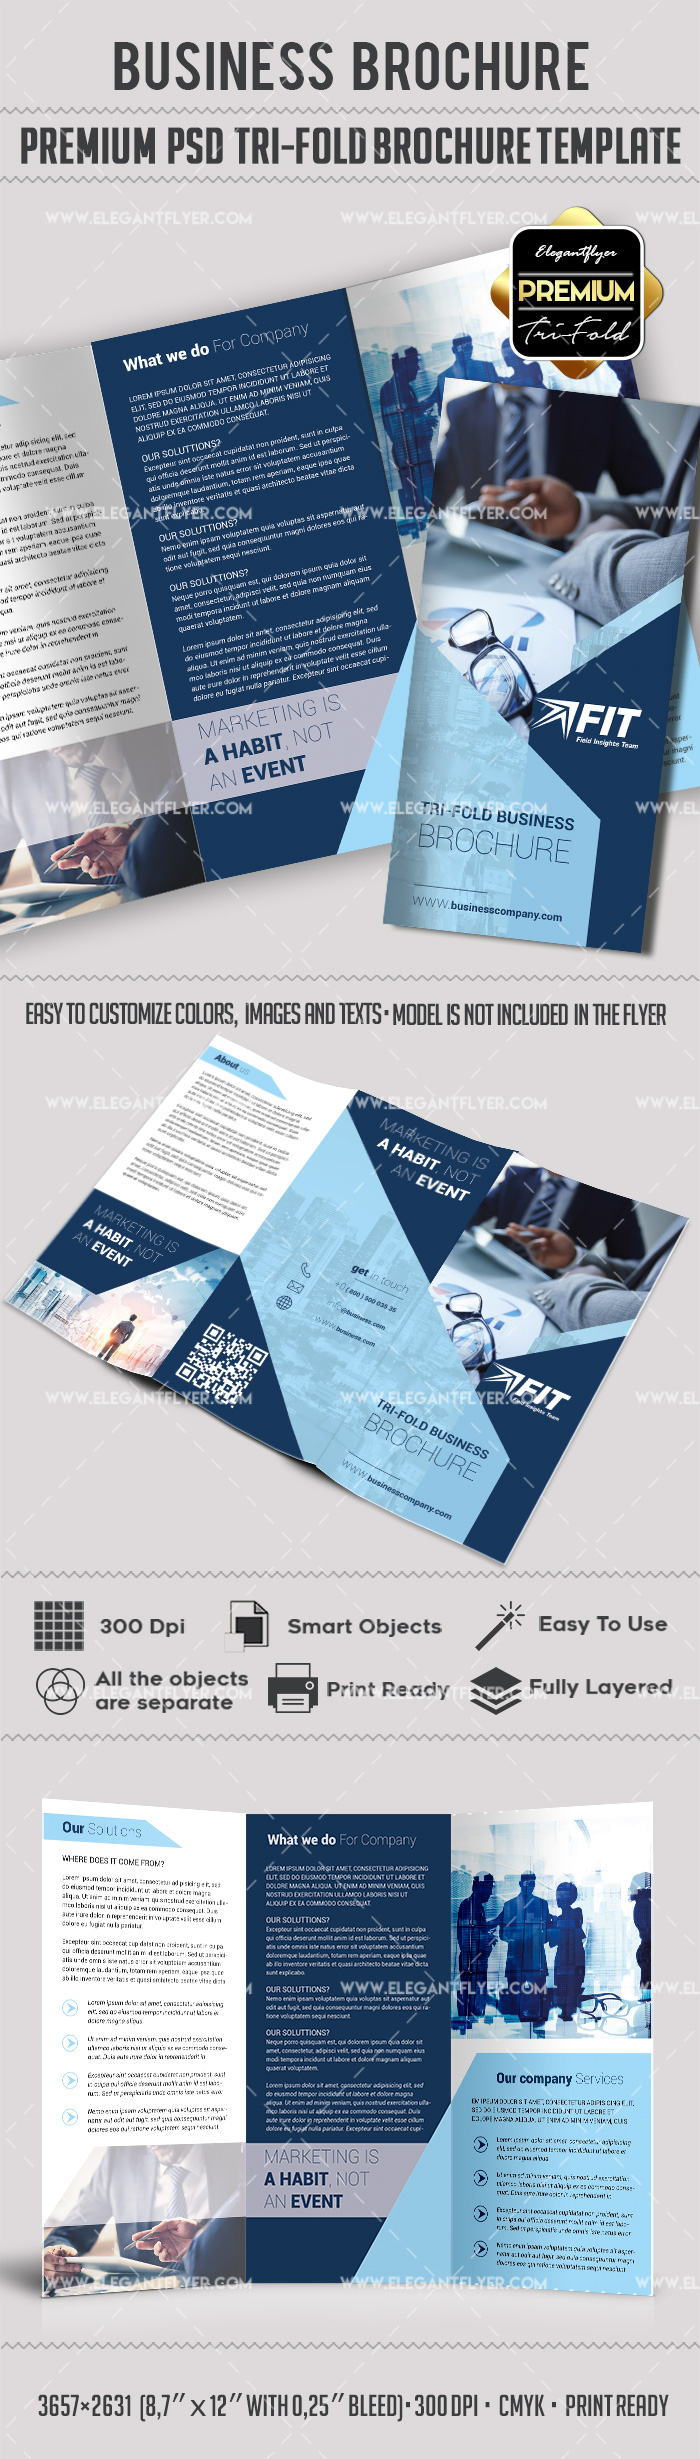 business brochures templates - photoshop brochure template by elegantflyer